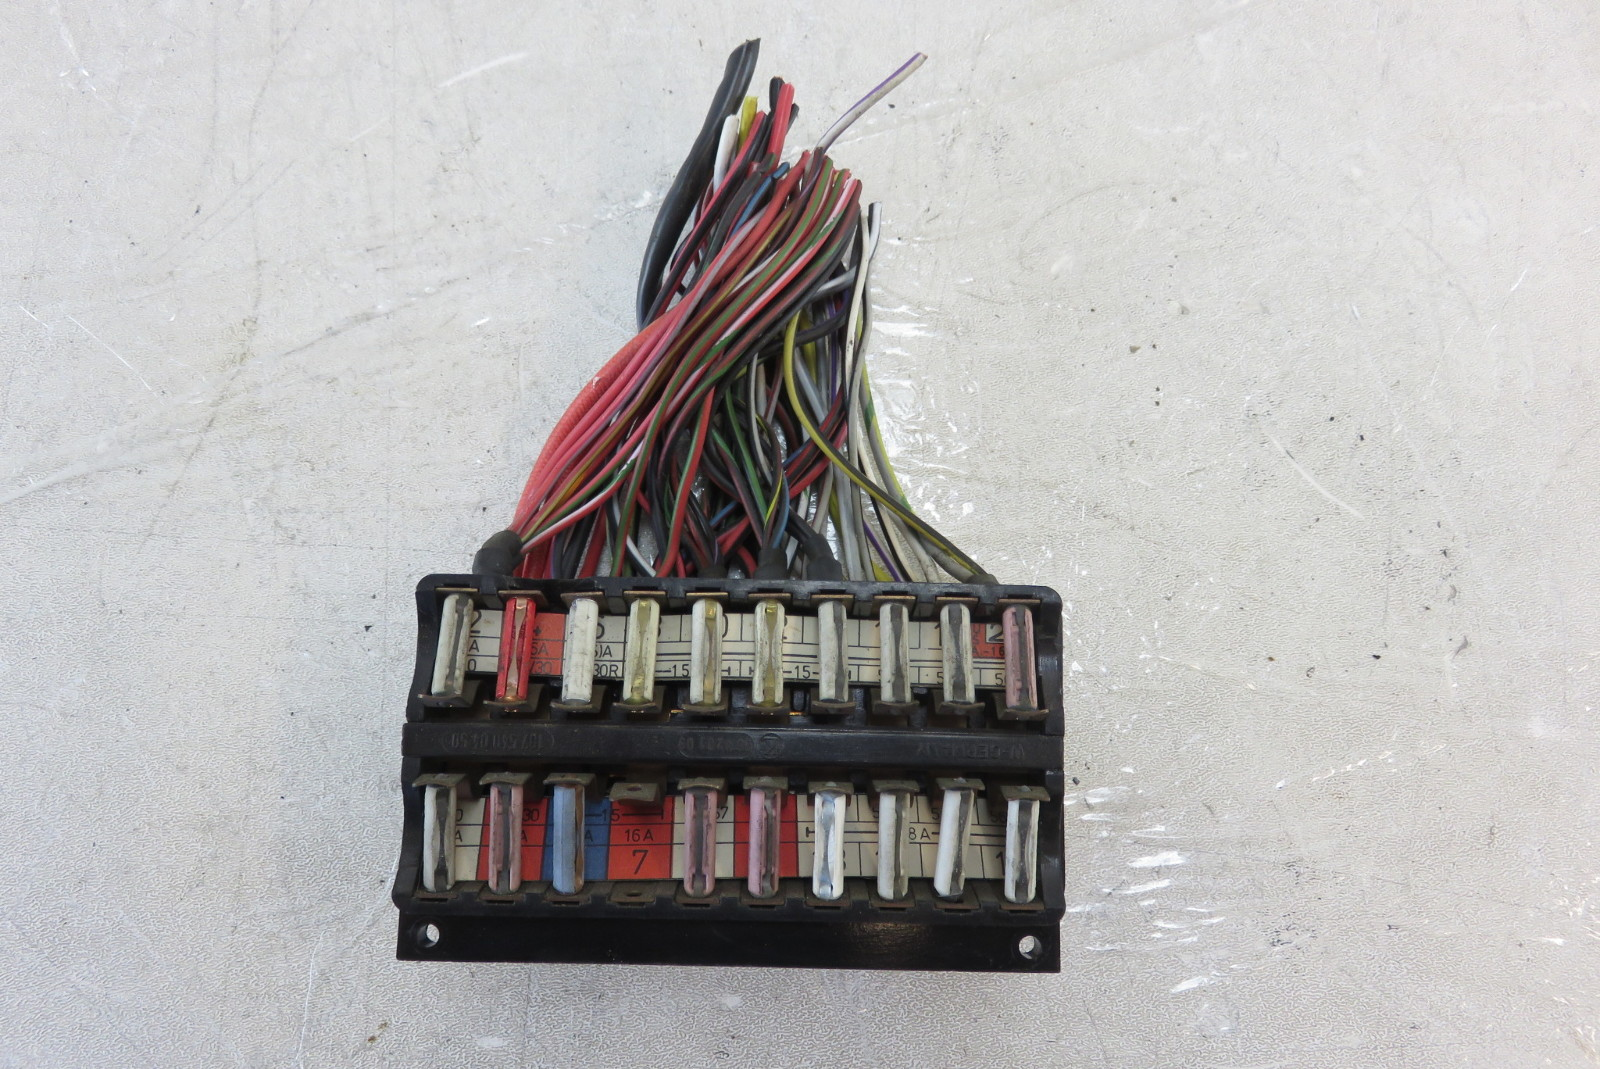 450sl Fuse Box Mastering Wiring Diagram 2009 Mini Cooper Location 73 Mercedes R107 1075401705 S Auto Parts Rh Exoticsalvage Com 1980